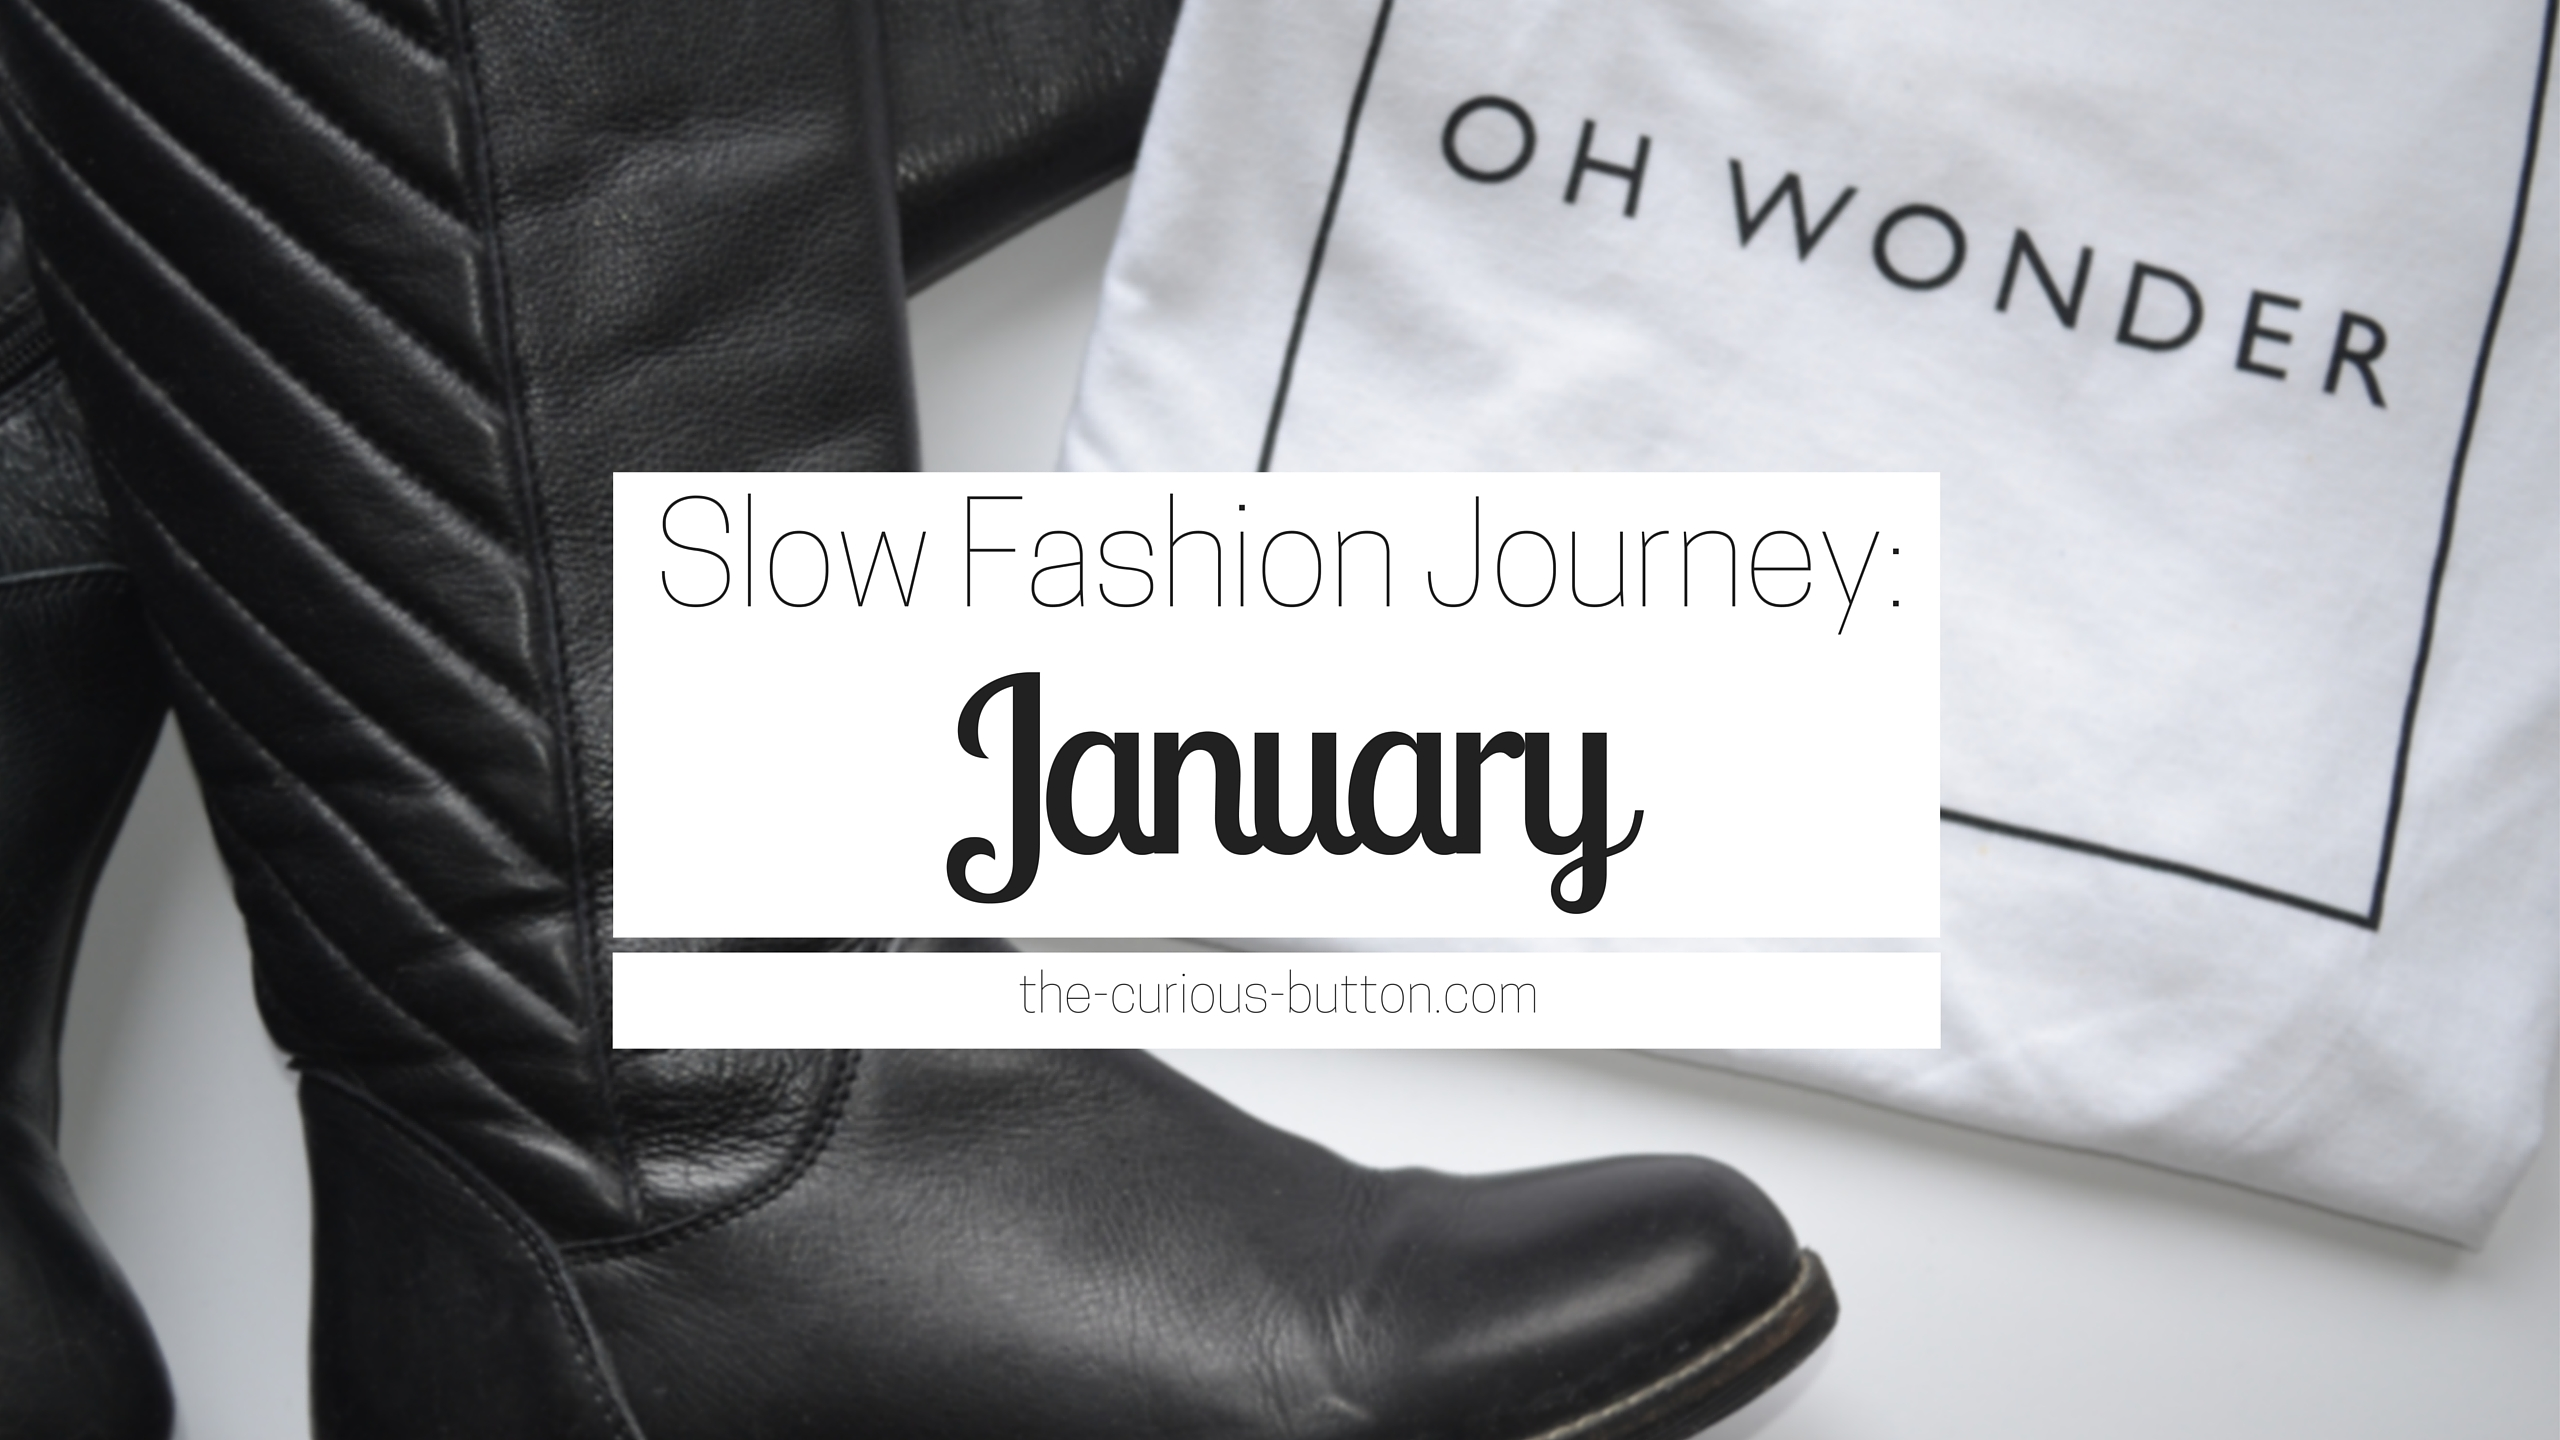 Slow Fashion Journey: January | The Curious Button, an ethically conscious lifestyle blog.